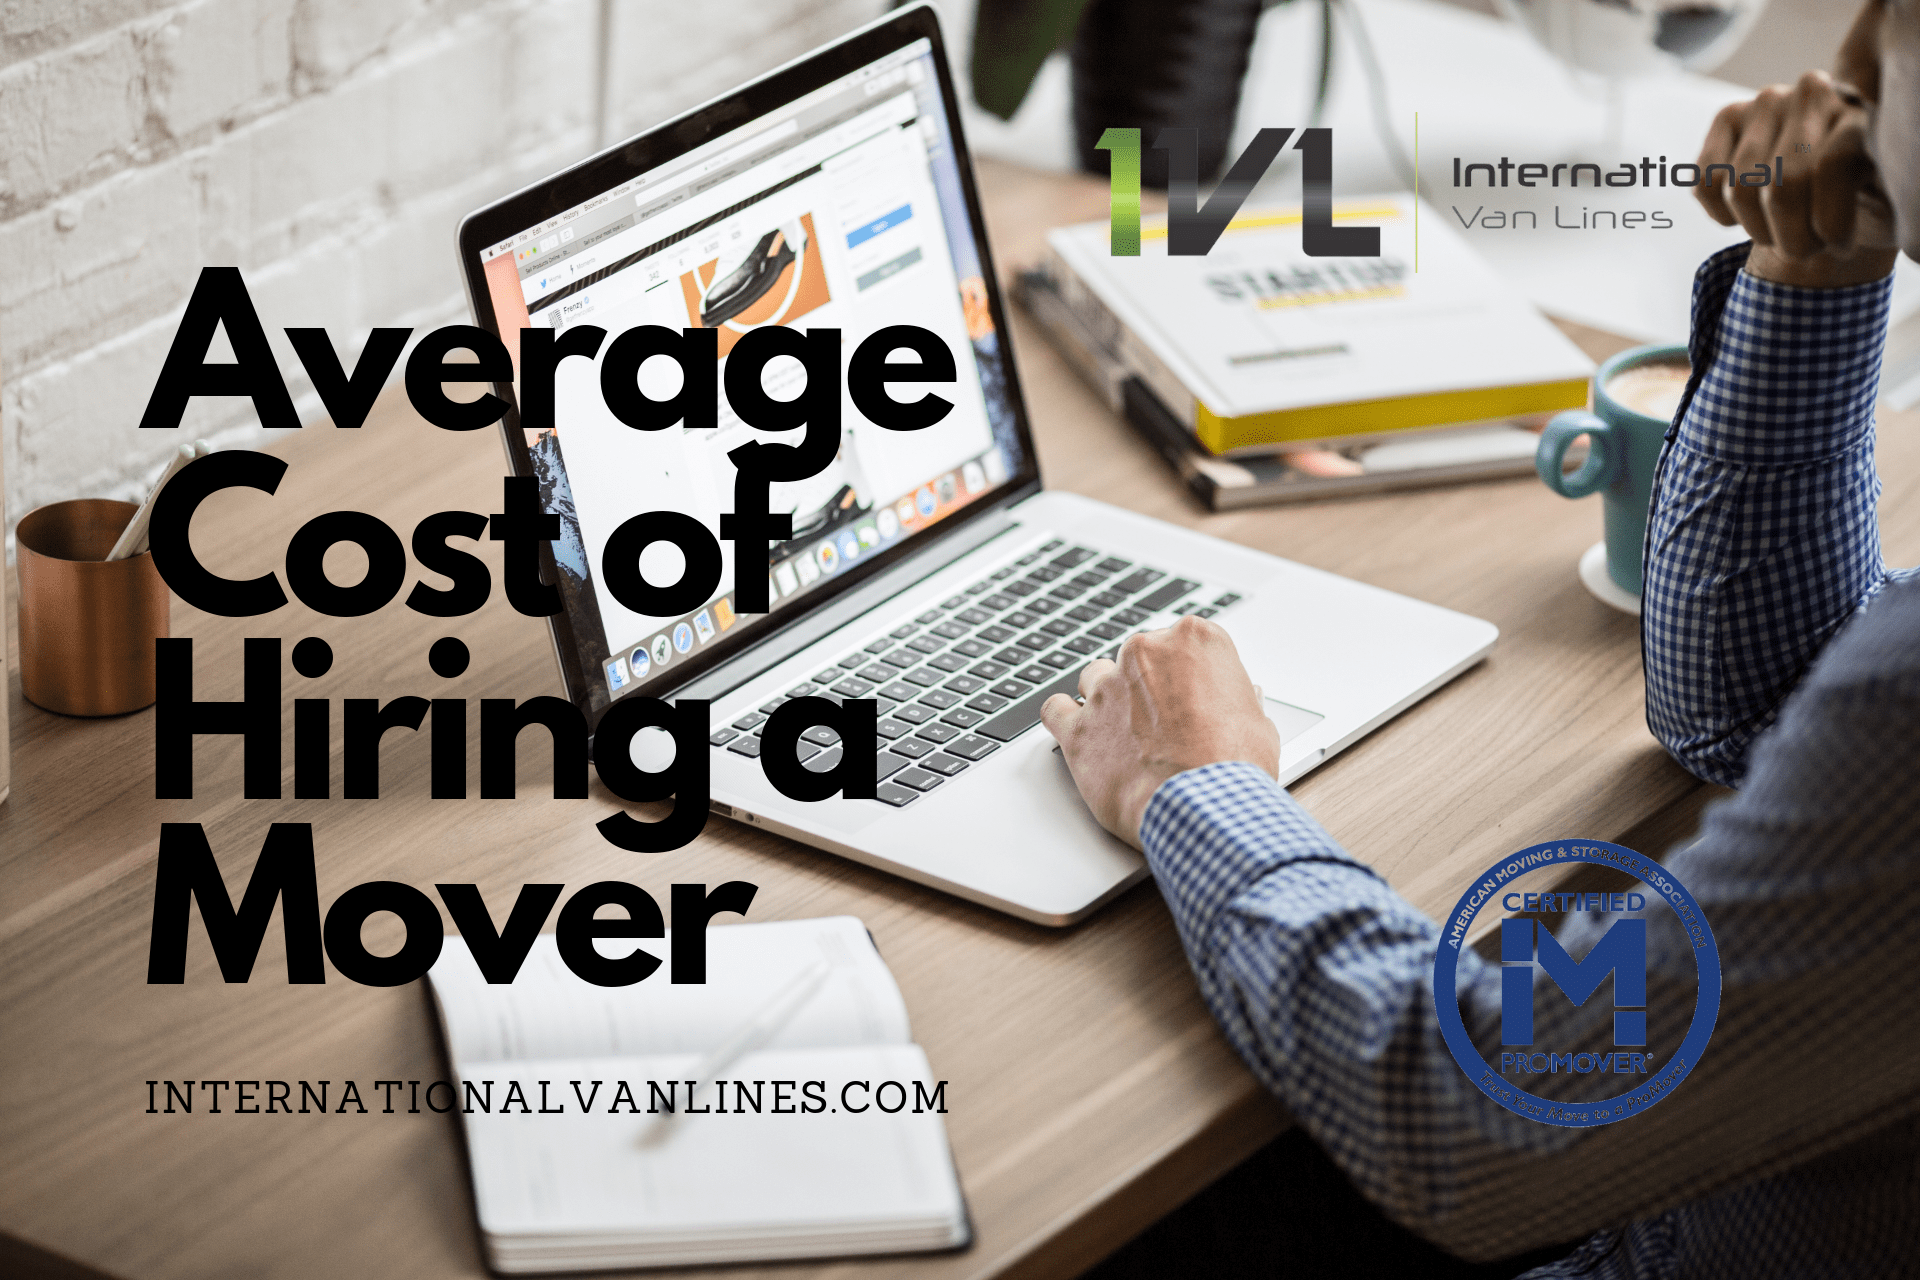 Average cost of hiring a mover